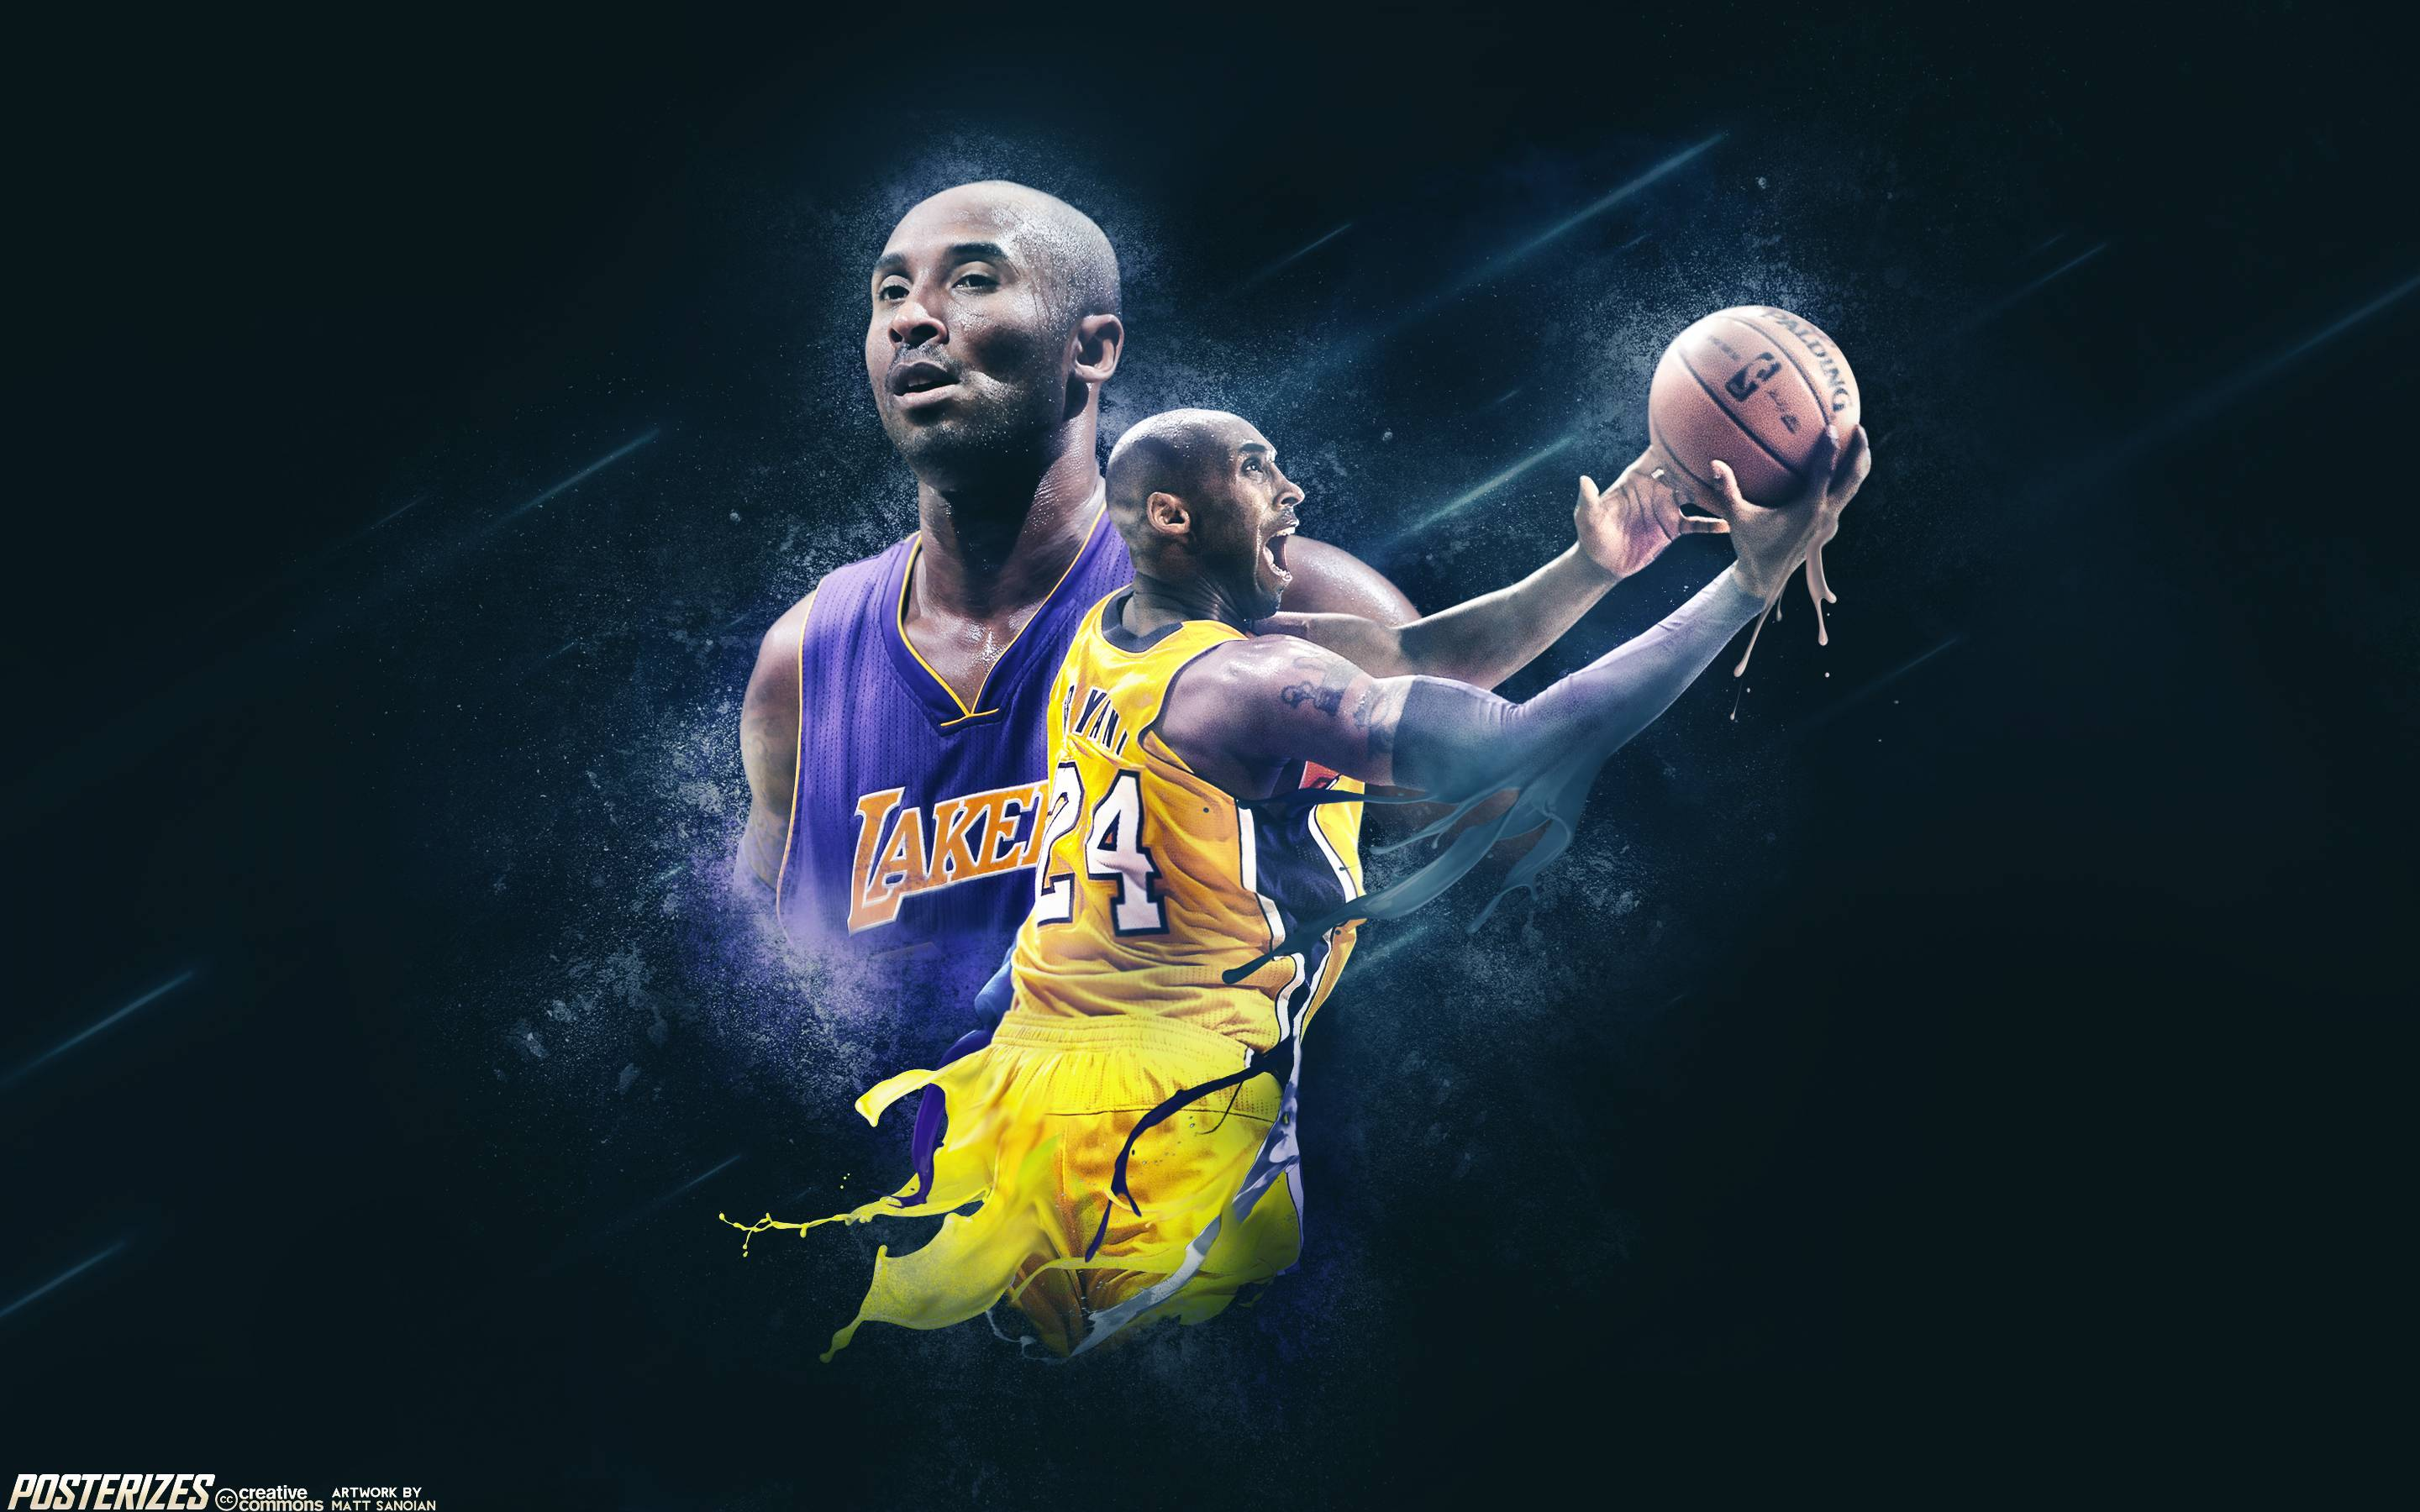 kobe bryant wallpaper 2016 - photo #41